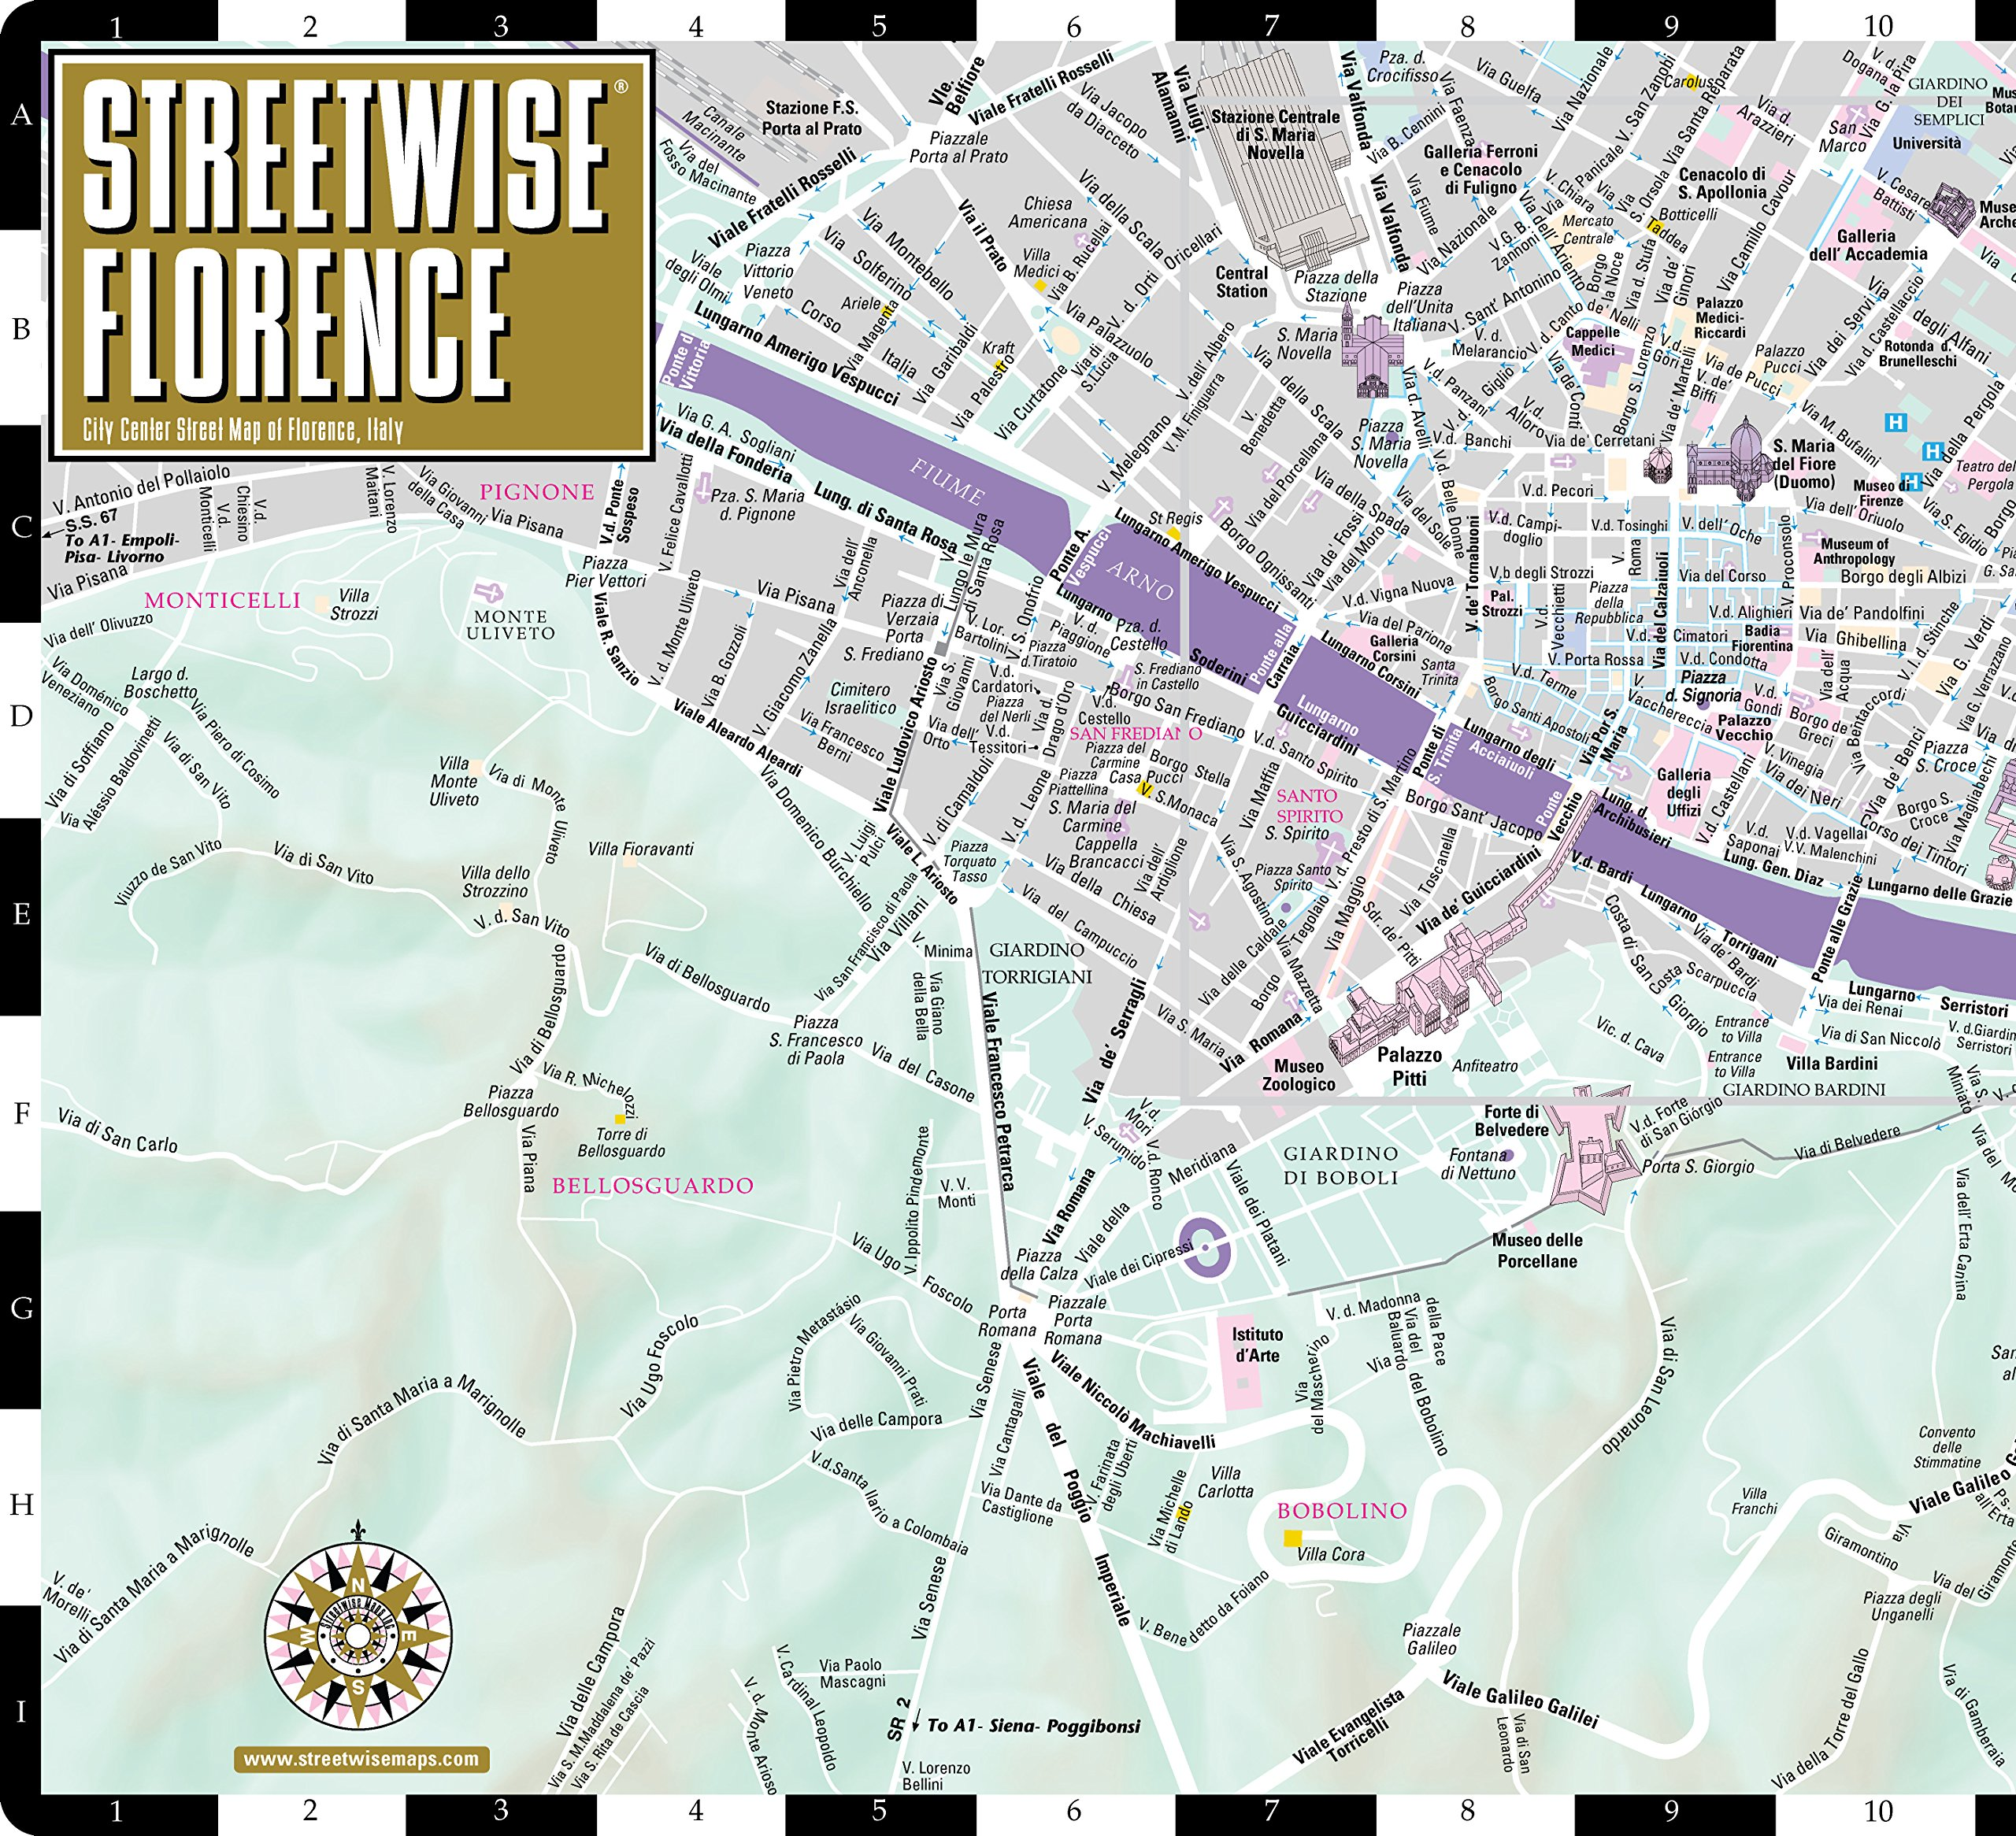 Streetwise Florence: City Center Street Map of Florence, Italy ...